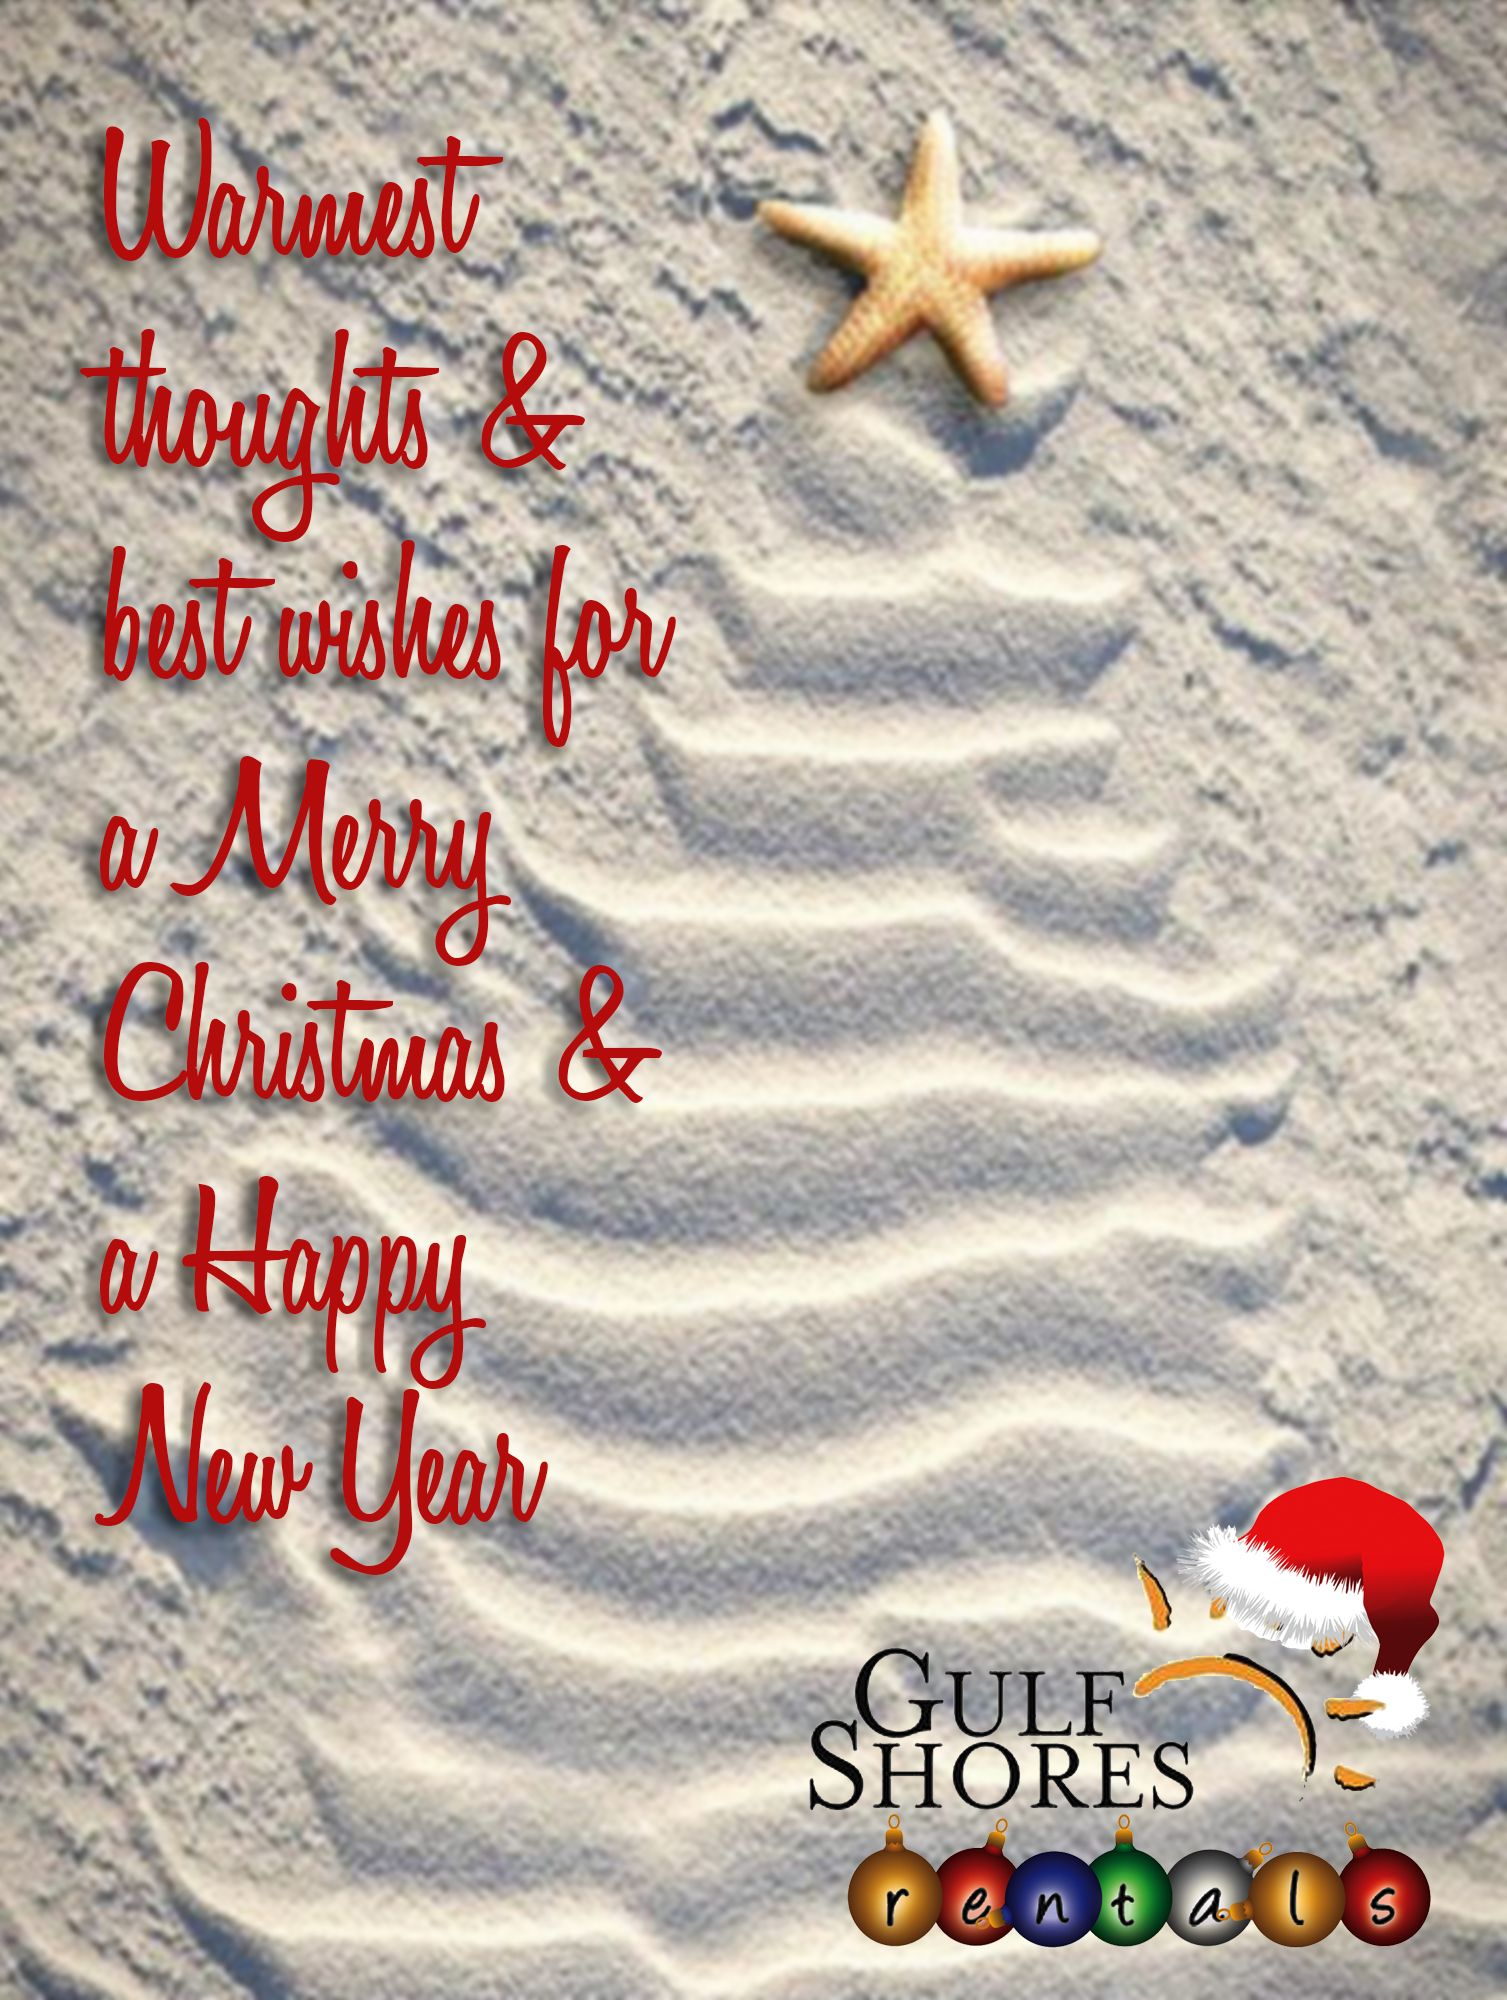 Merry Christmas from all of us at Gulf Shores Rentals!!